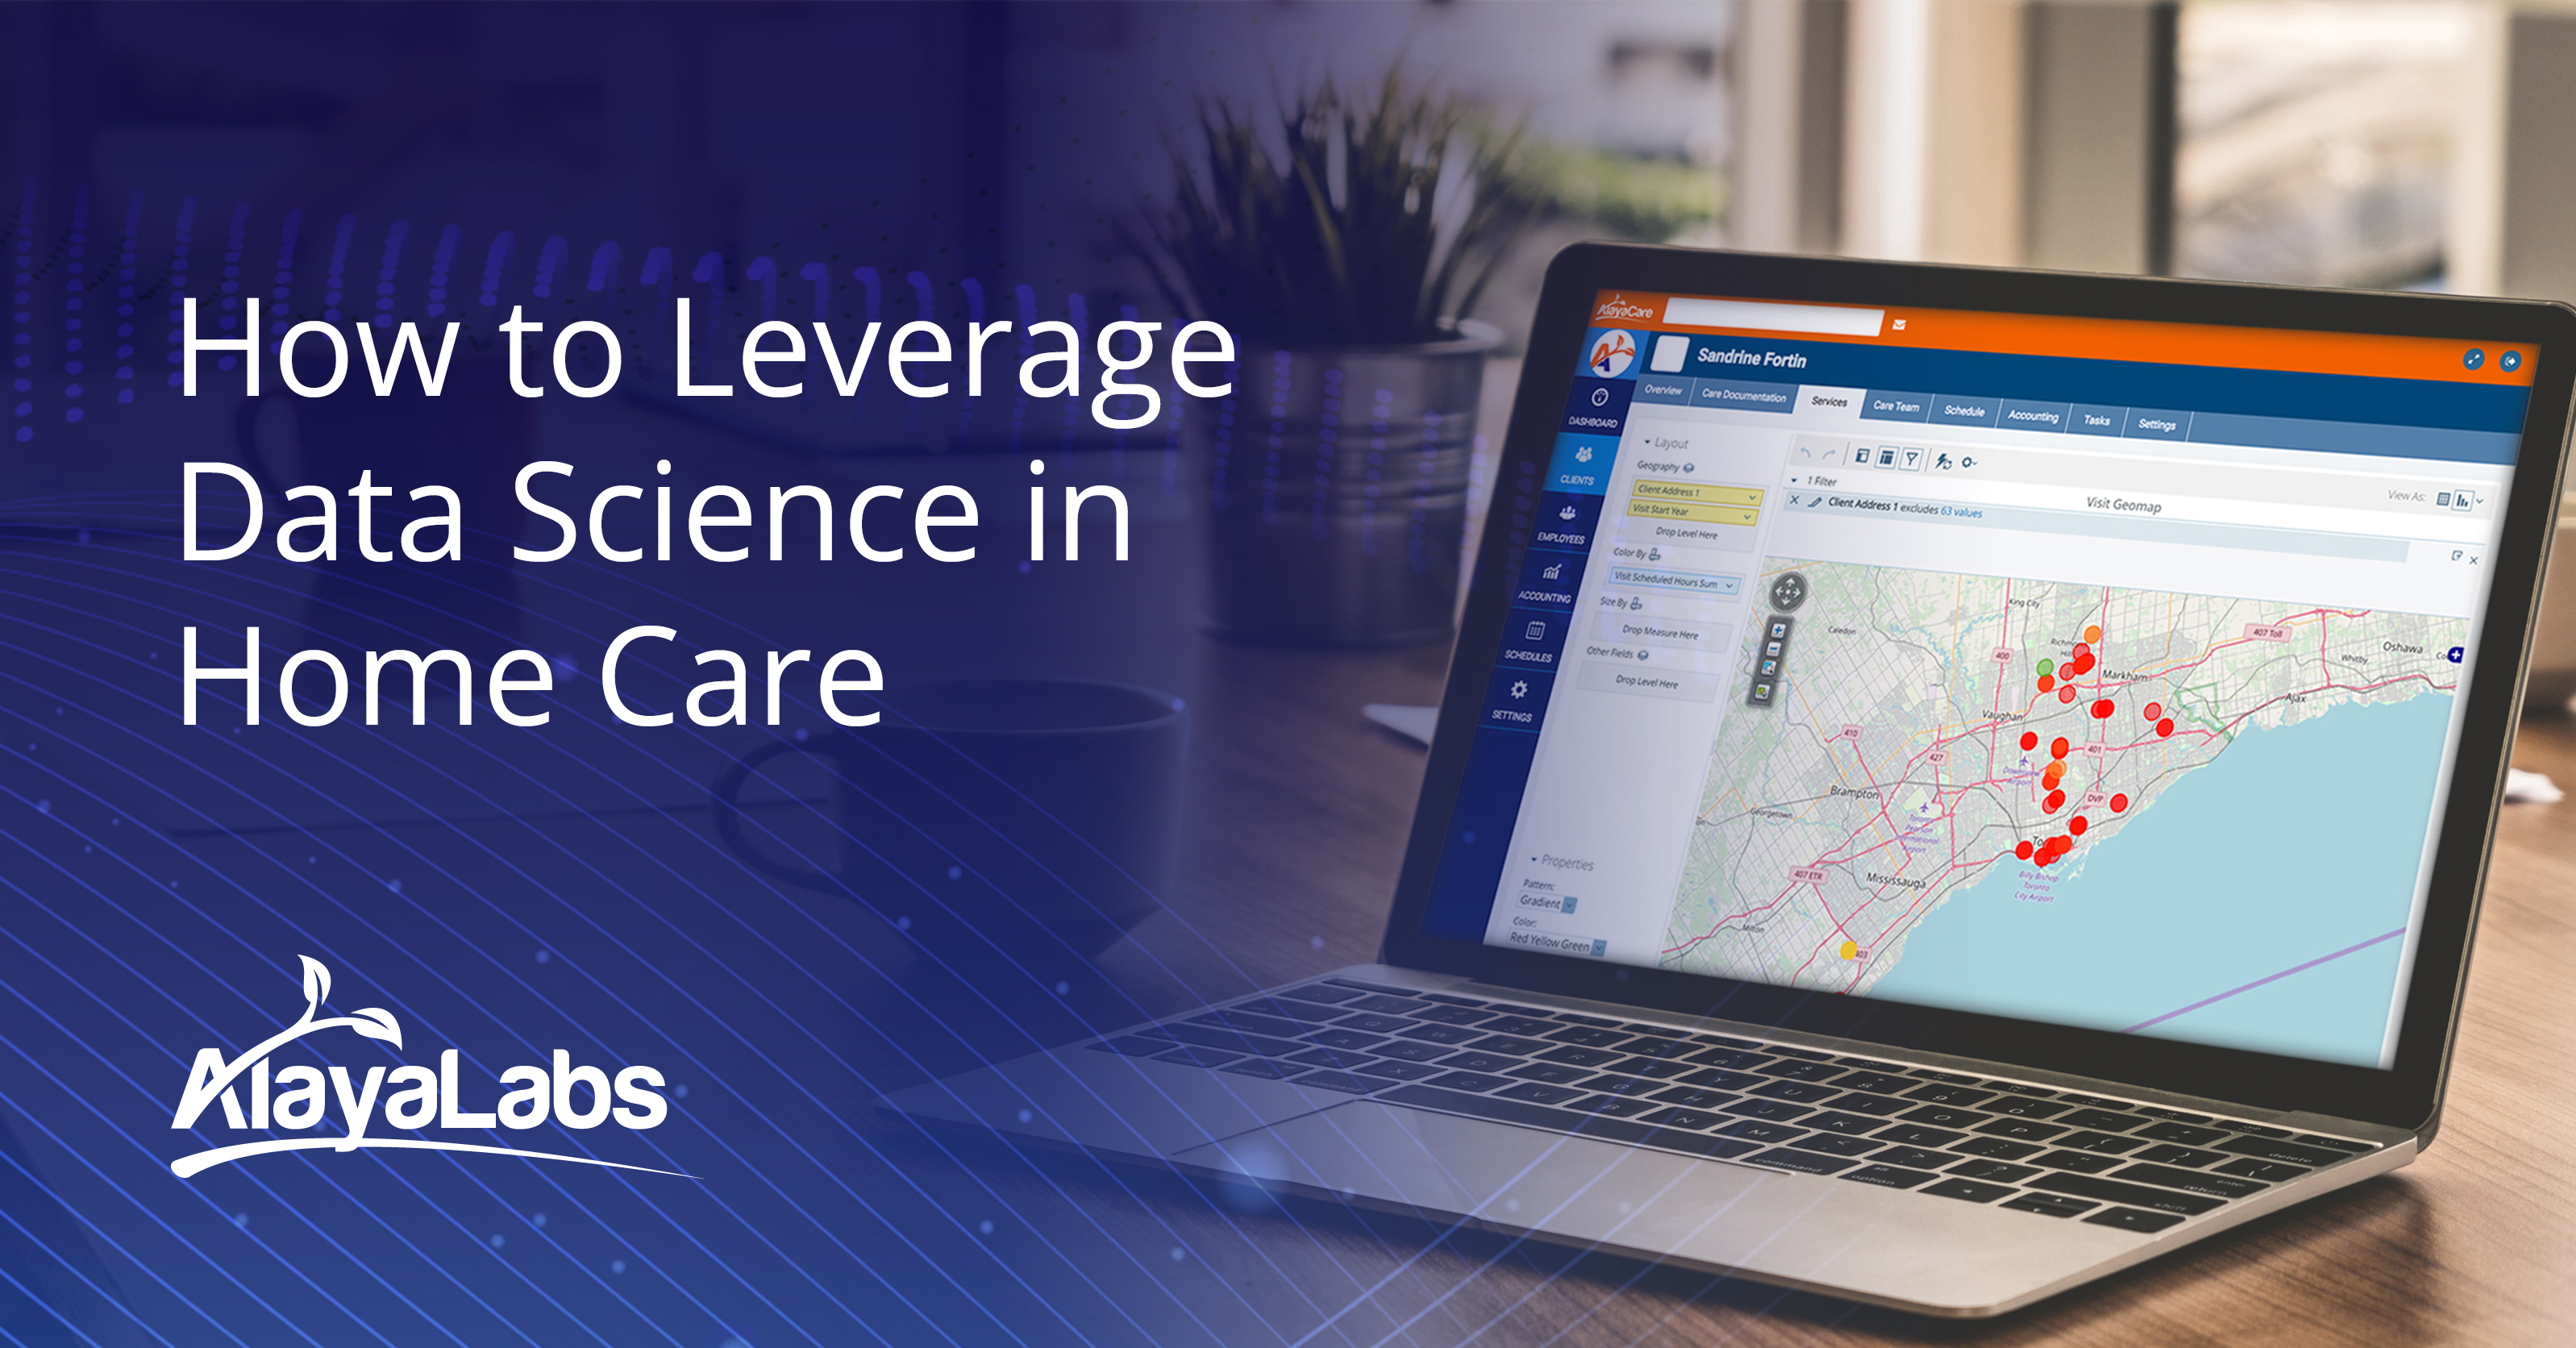 How to Leverage Data Science in Home Care